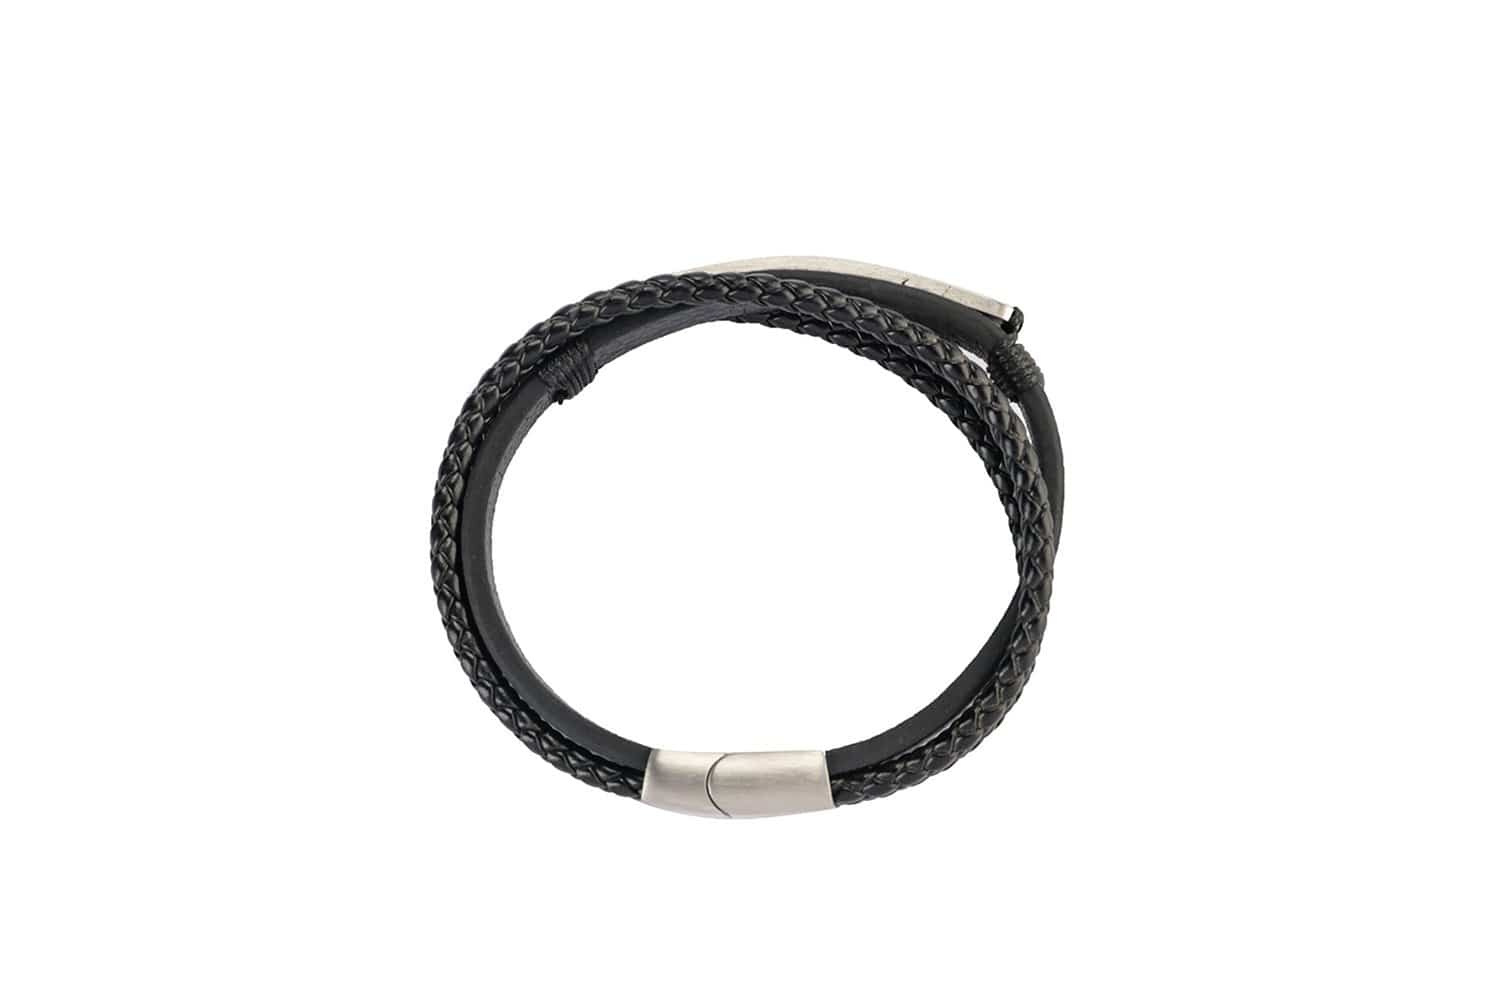 Metal Plate Triple Leather Bracelet - Black Bracelets - Urban State Indonesia